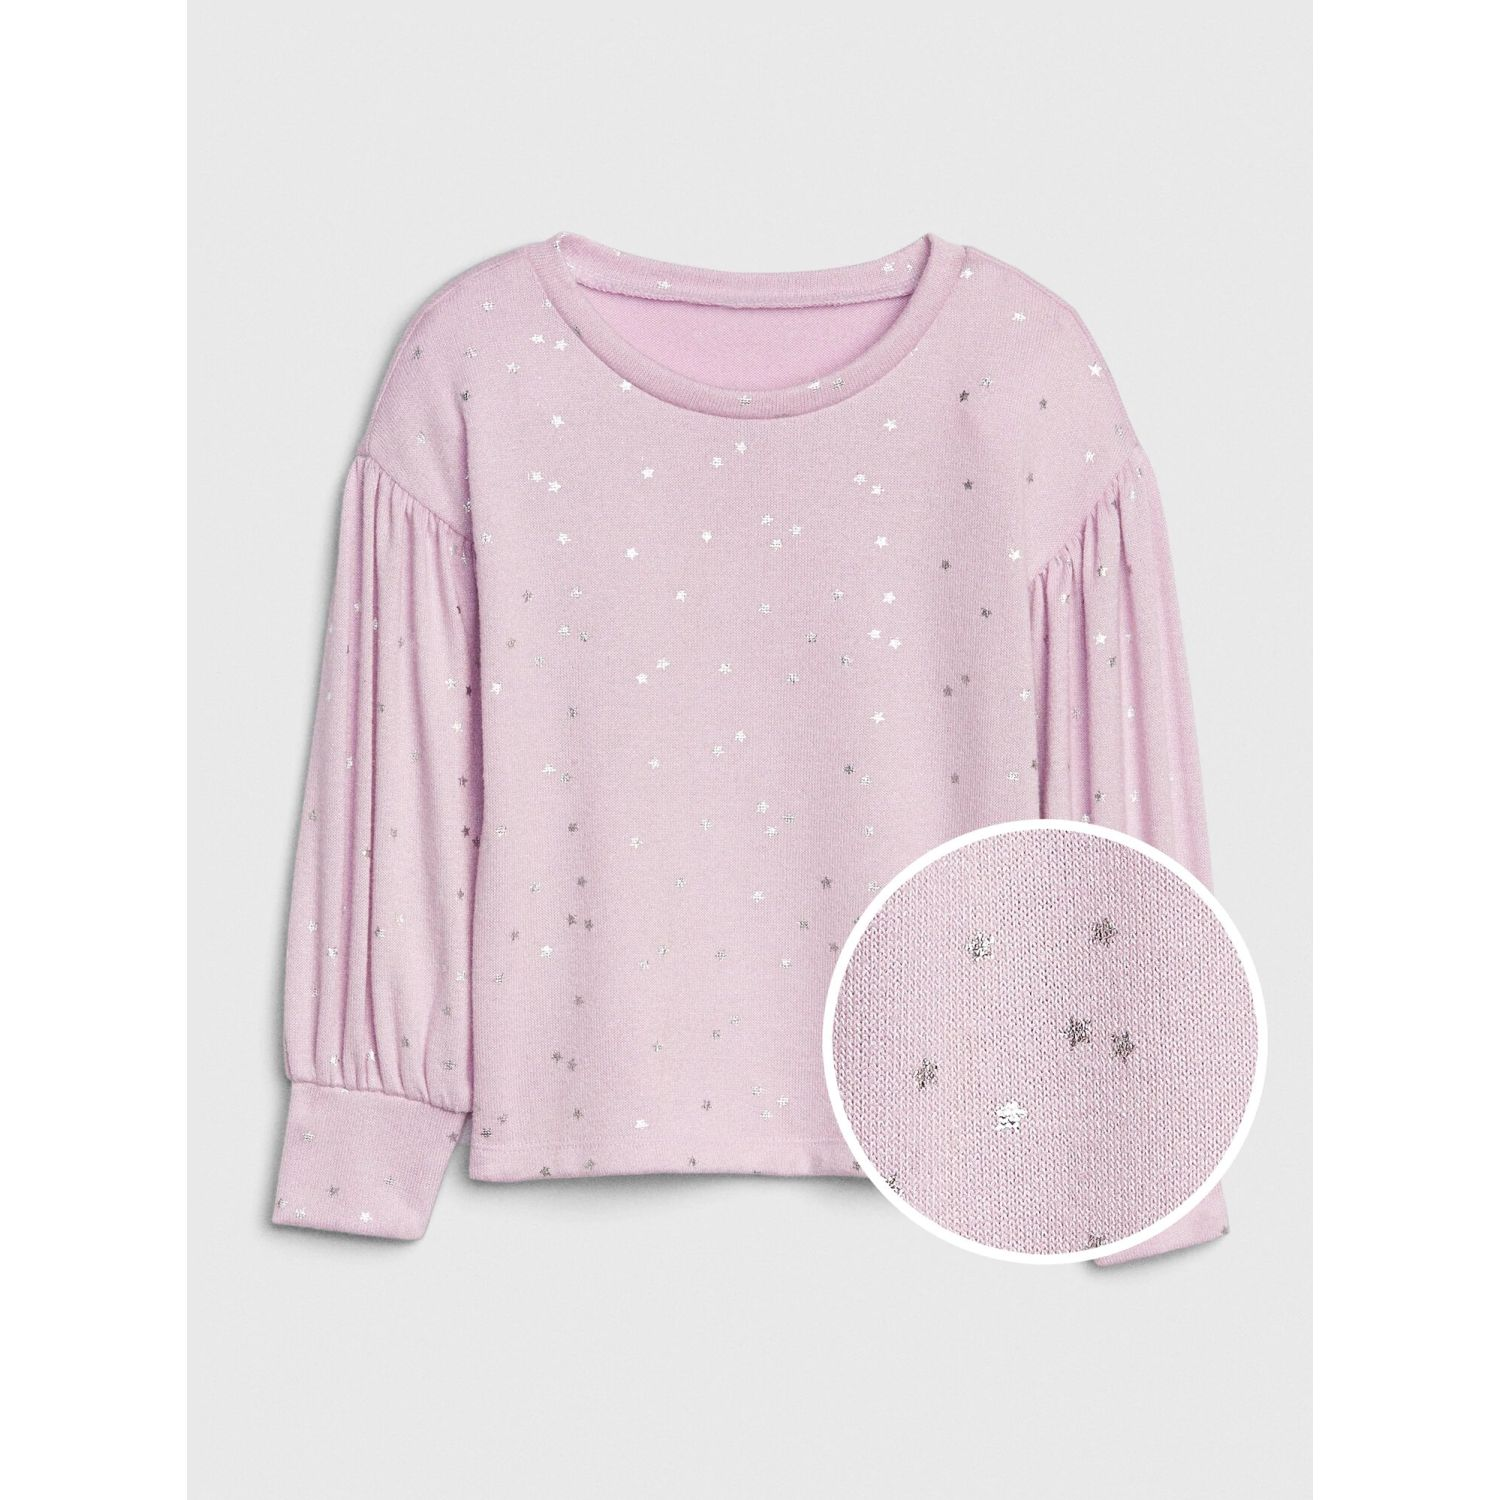 GAP POLO MANGA LARGA TODDLER NIÑA Lila Tees